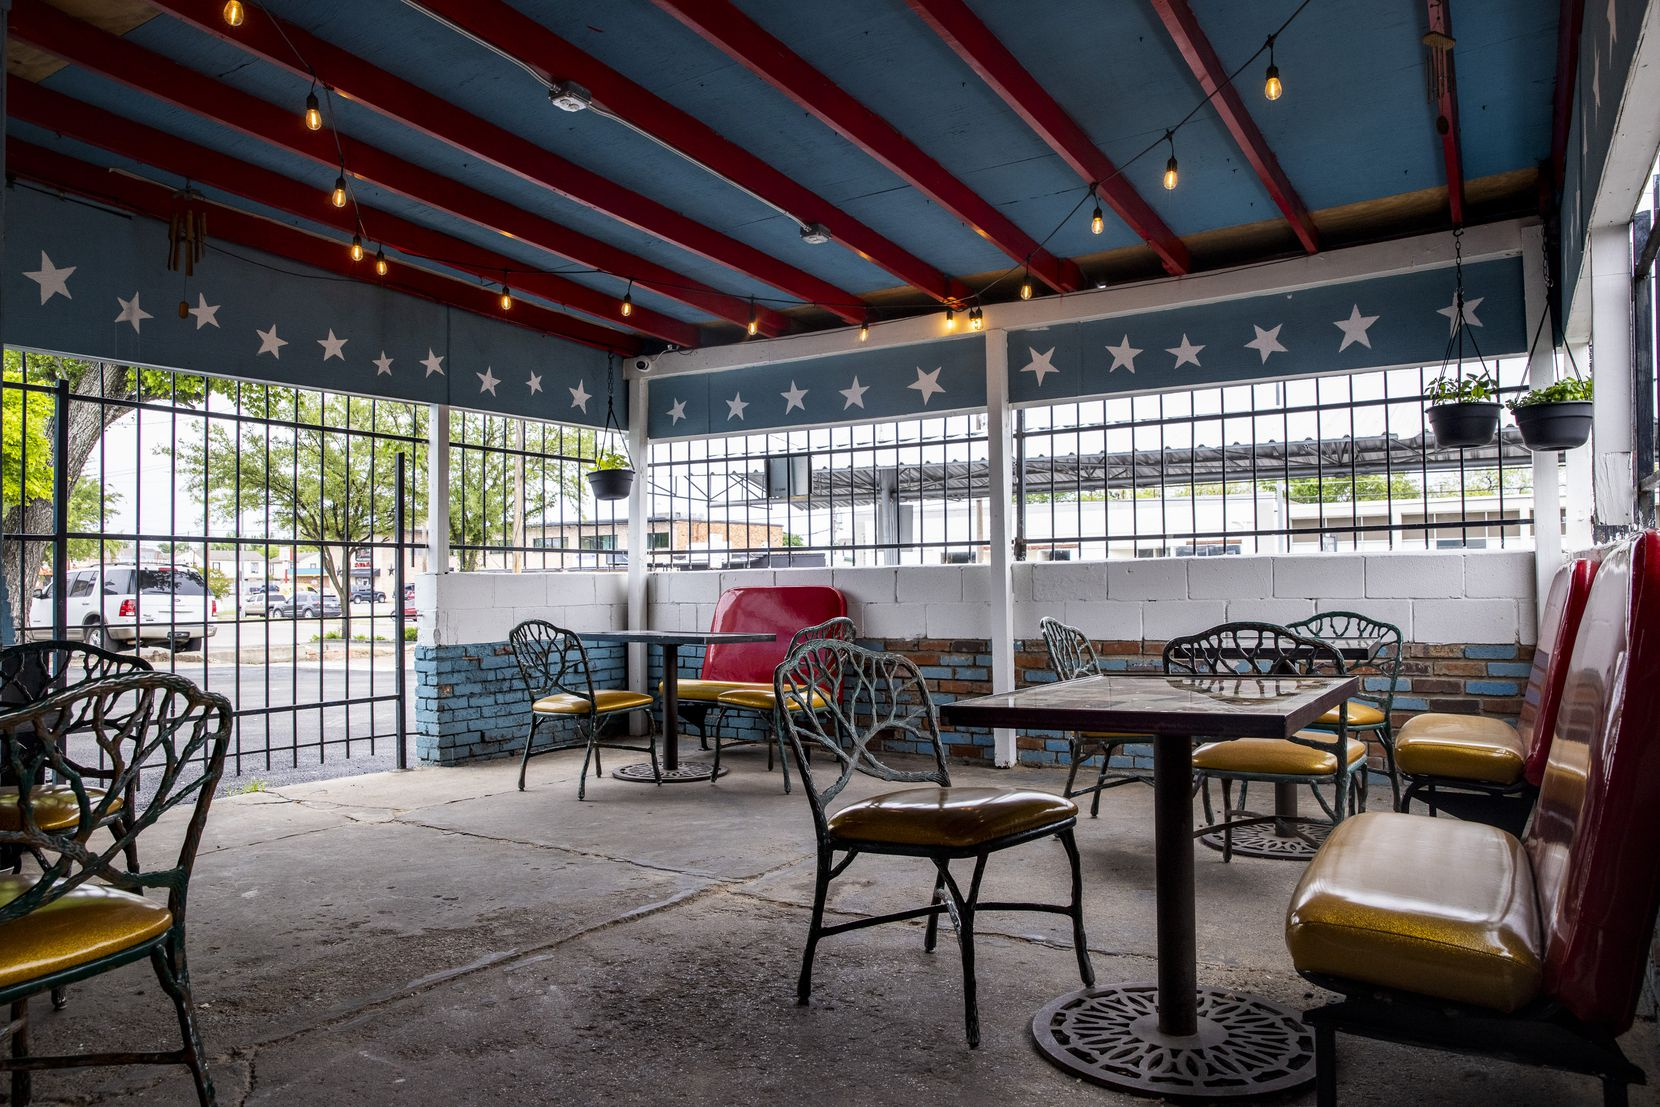 The front patio of Charlie's Star Lounge, a dive bar opening soon in East Dallas and photographed on Thursday, April 22, 2021.